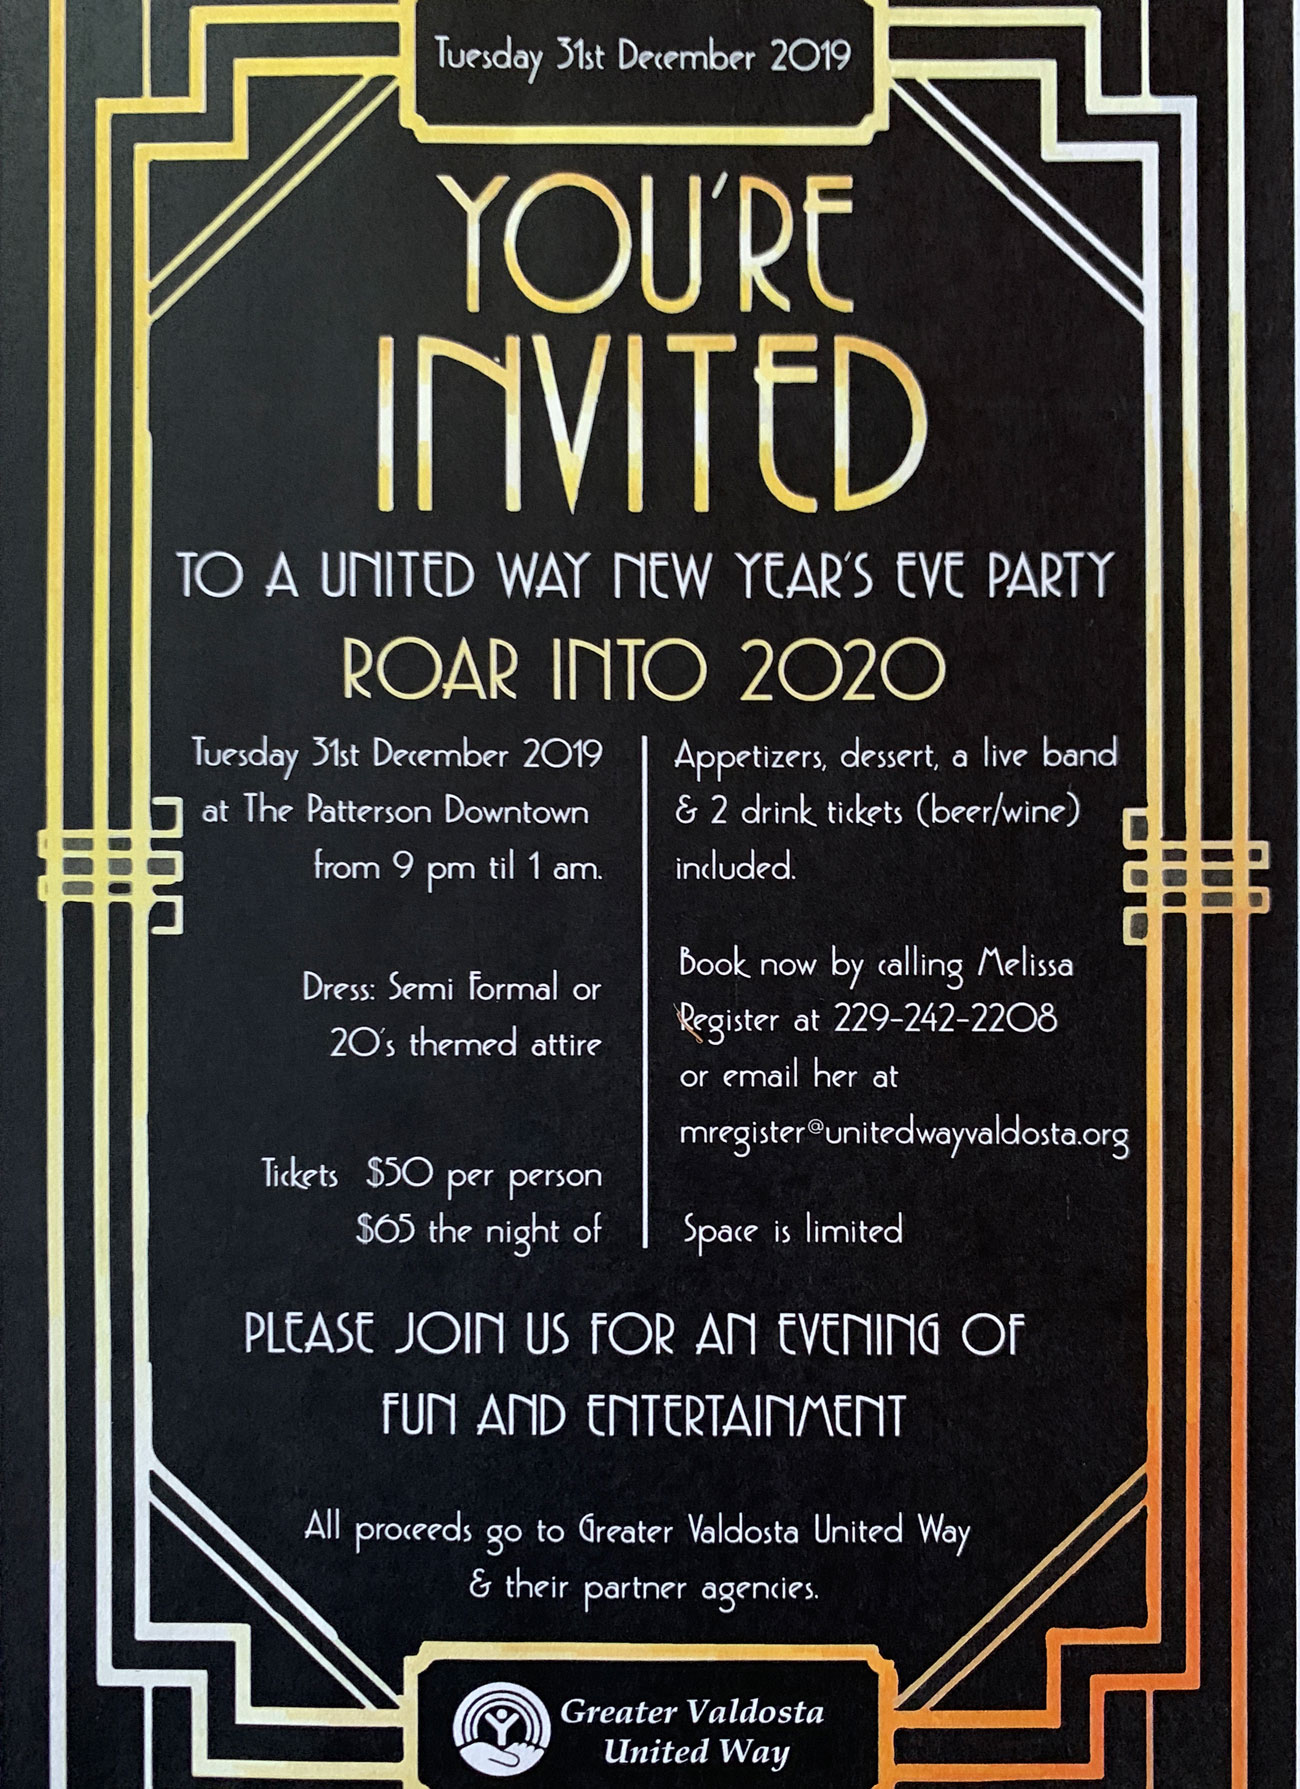 Your Invited to the Roar Into 2020 New Years Celebration